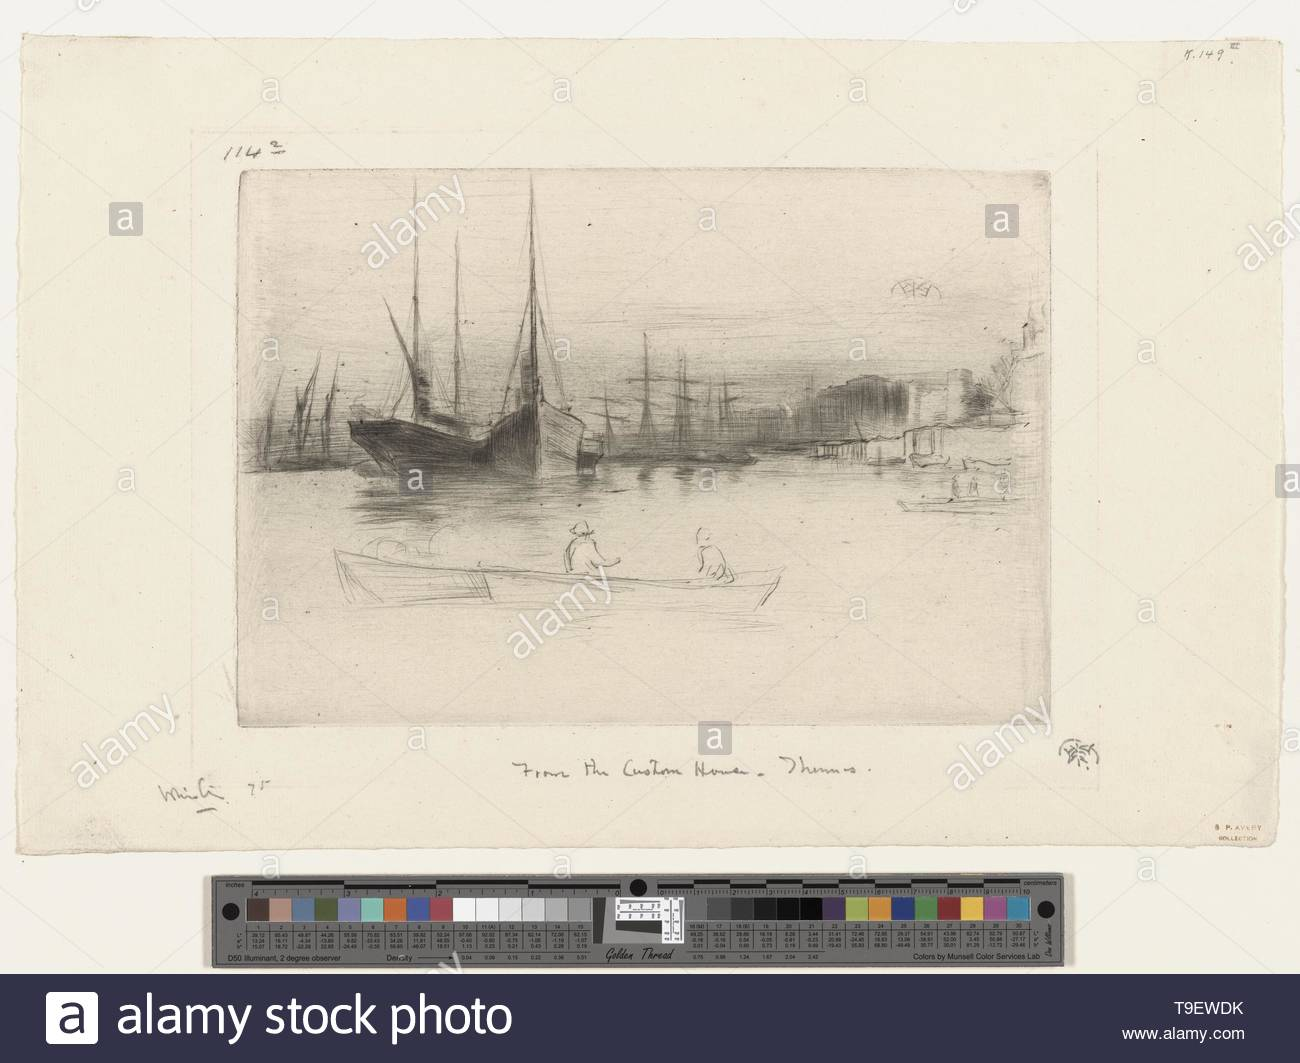 Whistler,JamesMcNeill(1834-1903)-Steamboats off the tower [2] - Stock Image